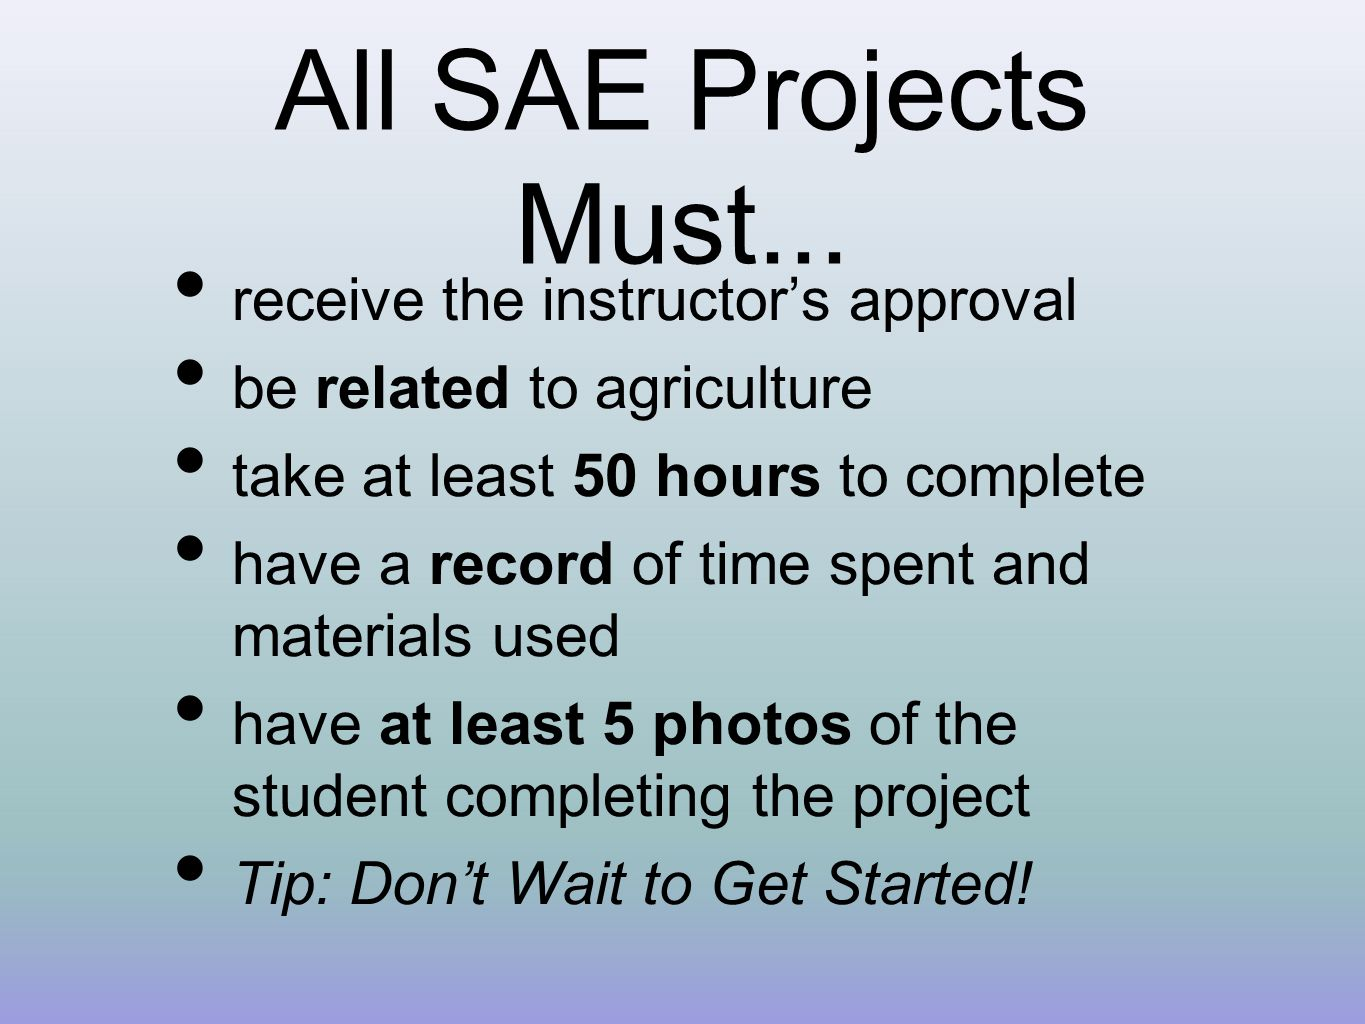 All SAE Projects Must...